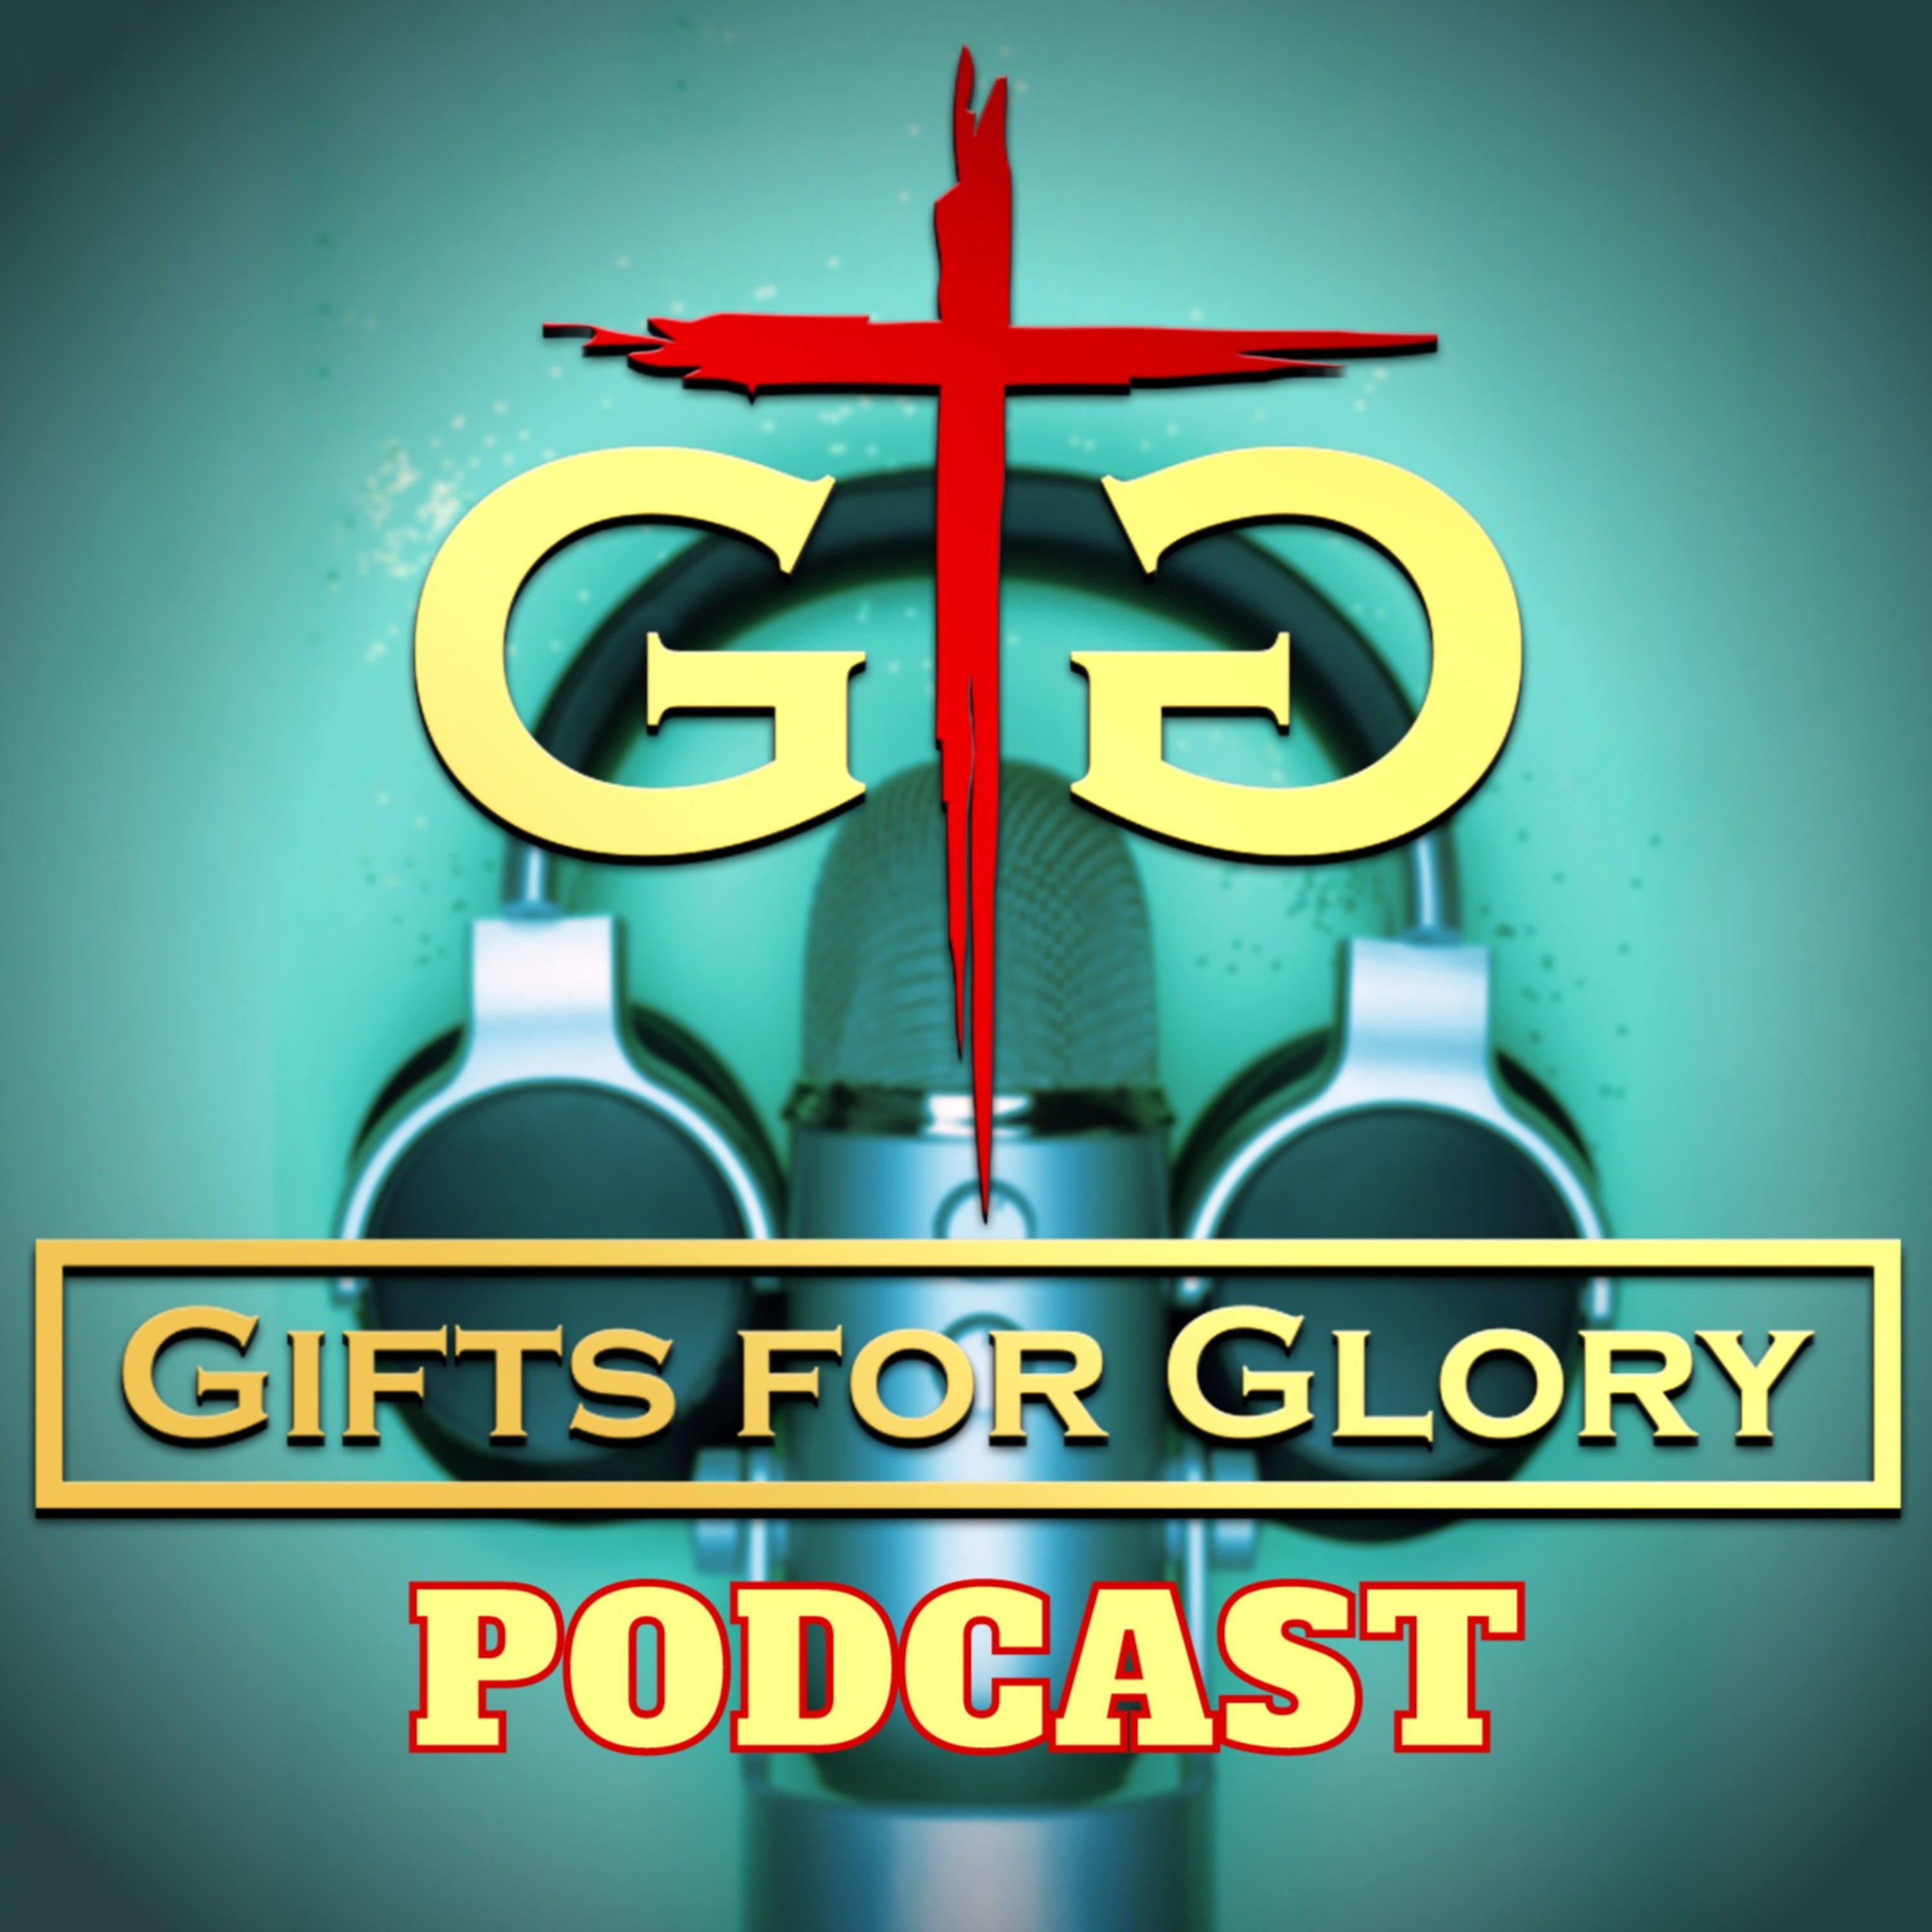 Gifts for Glory Podcast